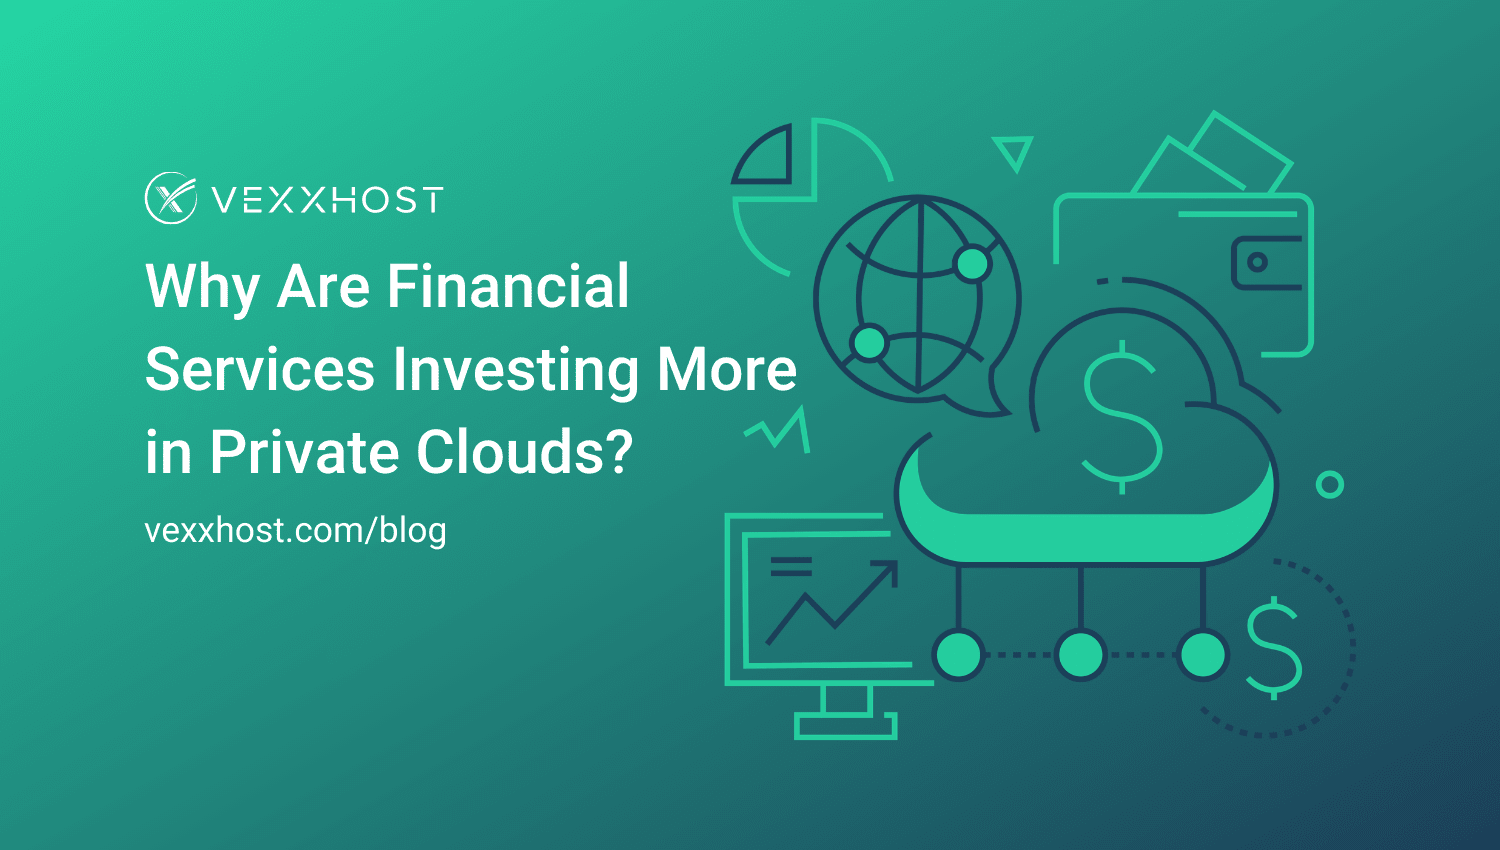 Why Are Financial Services Investing More in Private Clouds?